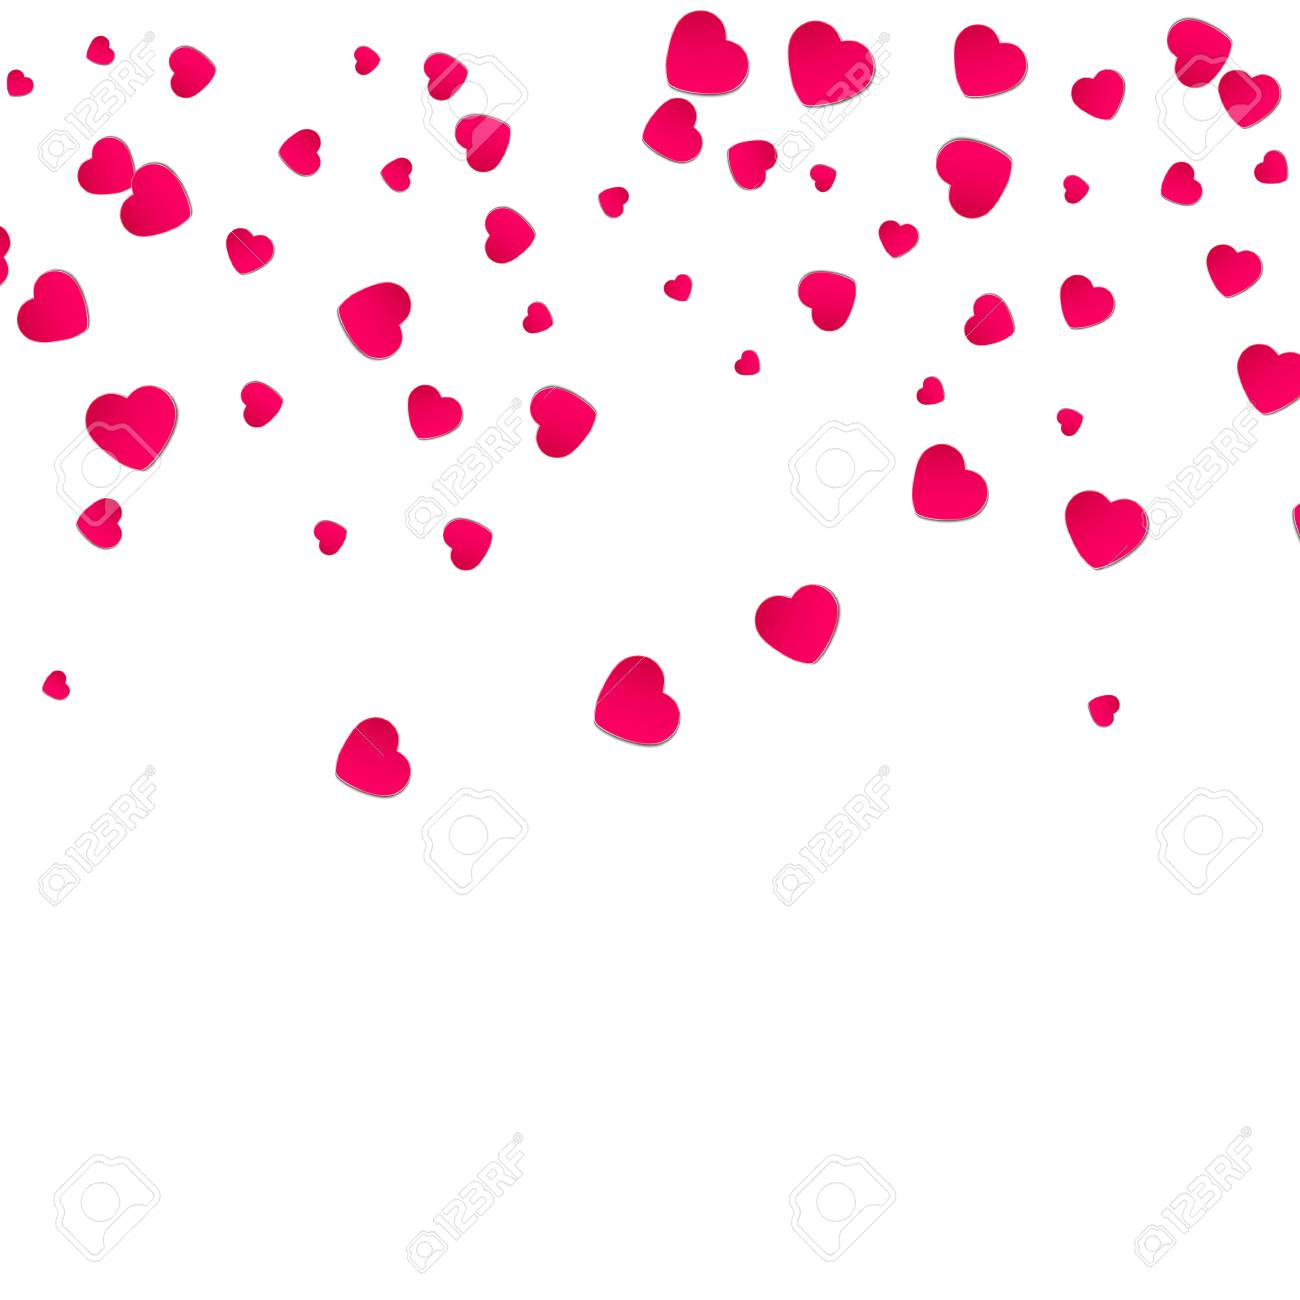 Red Pattern Of Random Falling Hearts Confetti Border Design